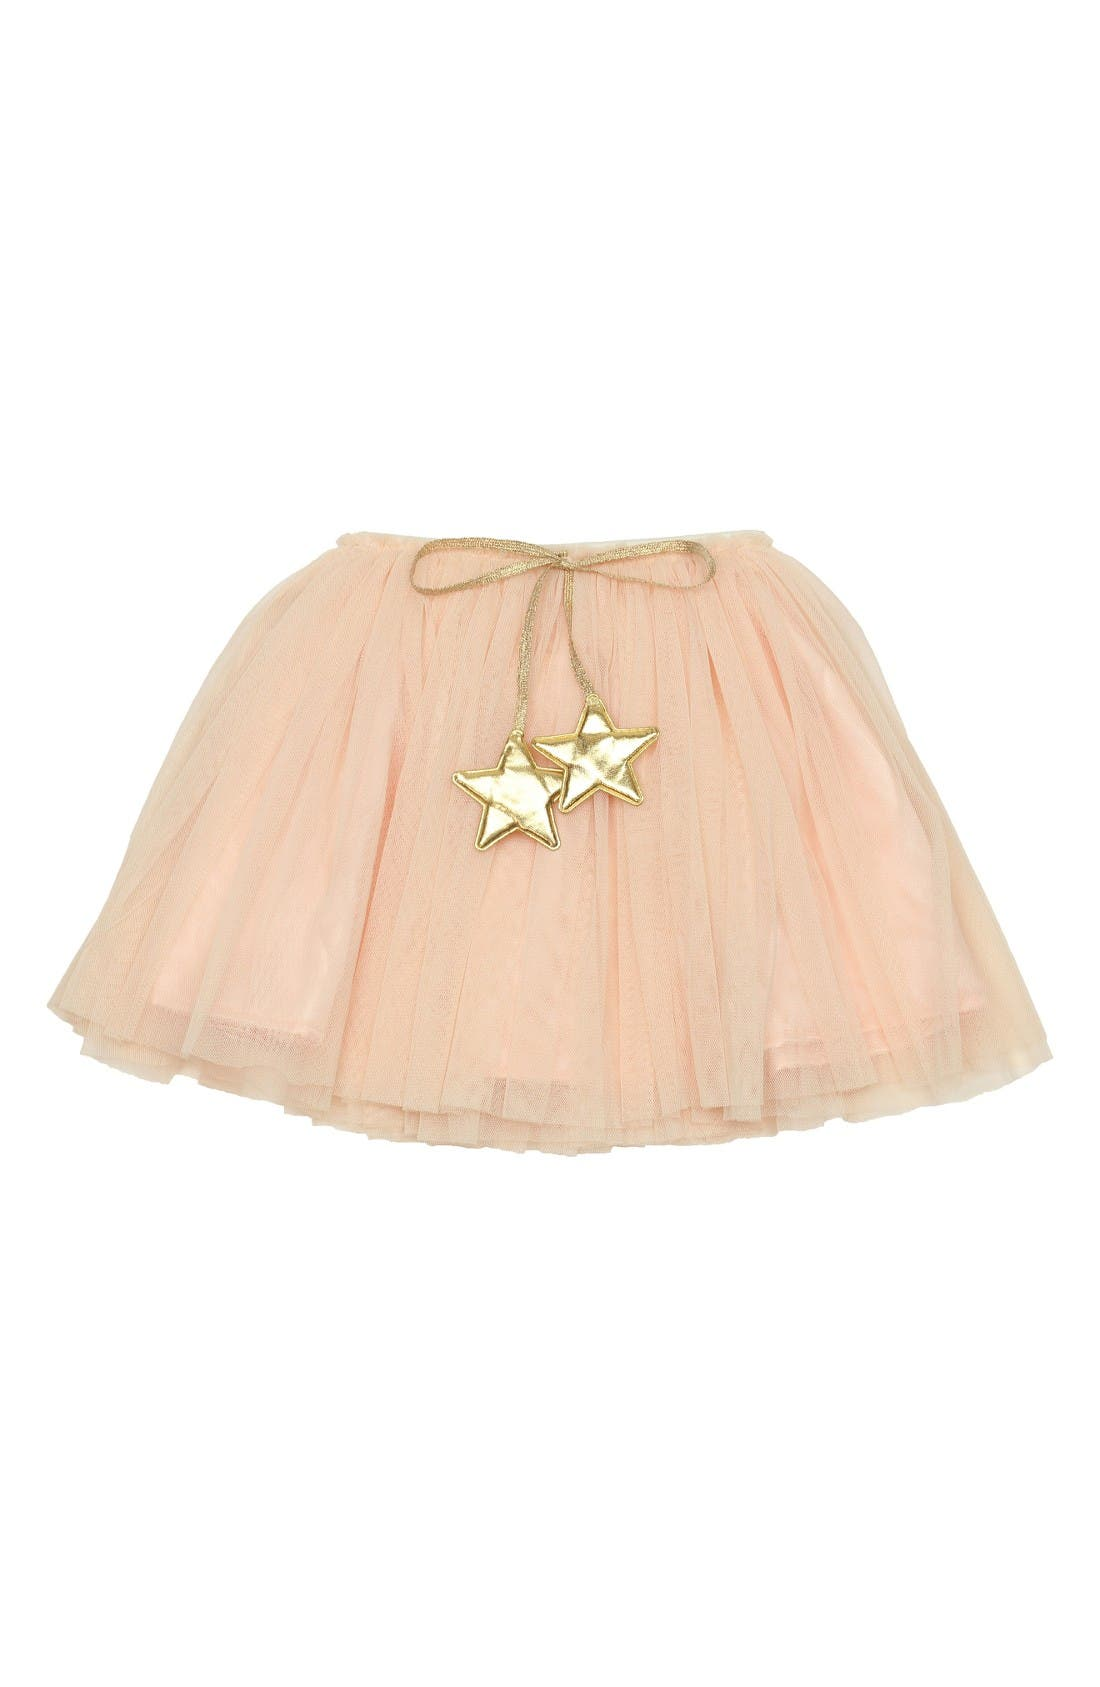 Alternate Image 1 Selected - Popatu Gold Star Tutu Skirt (Toddler Girls & Little Girls)